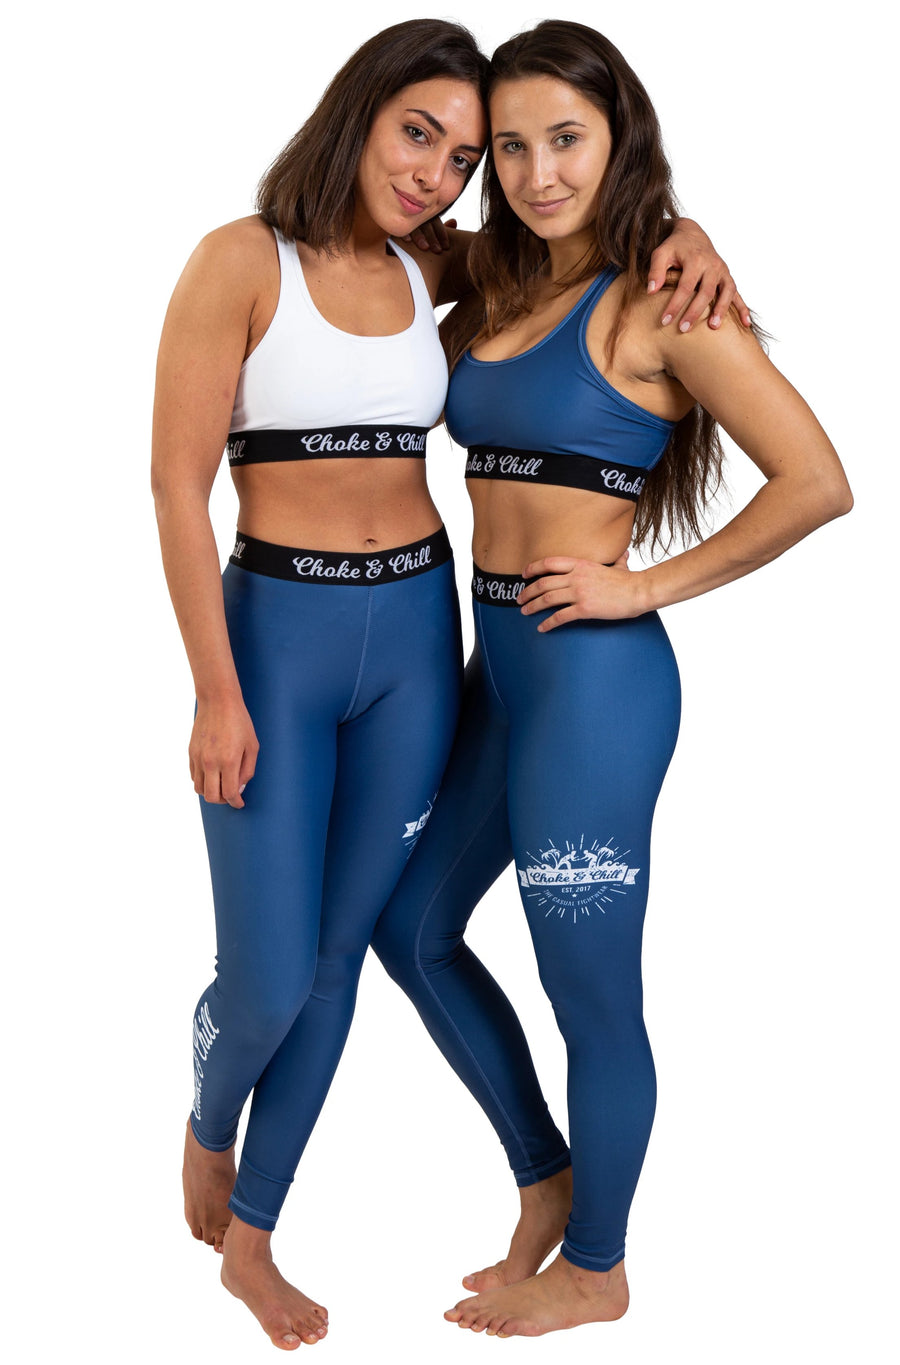 choke&chill Sport leggins spats blue matching sports bra fightwear training female athlete fighter  BJJ No-Gi Grappling Brazilian Jiu Jitsu MMA Kampfsport Martial Arts